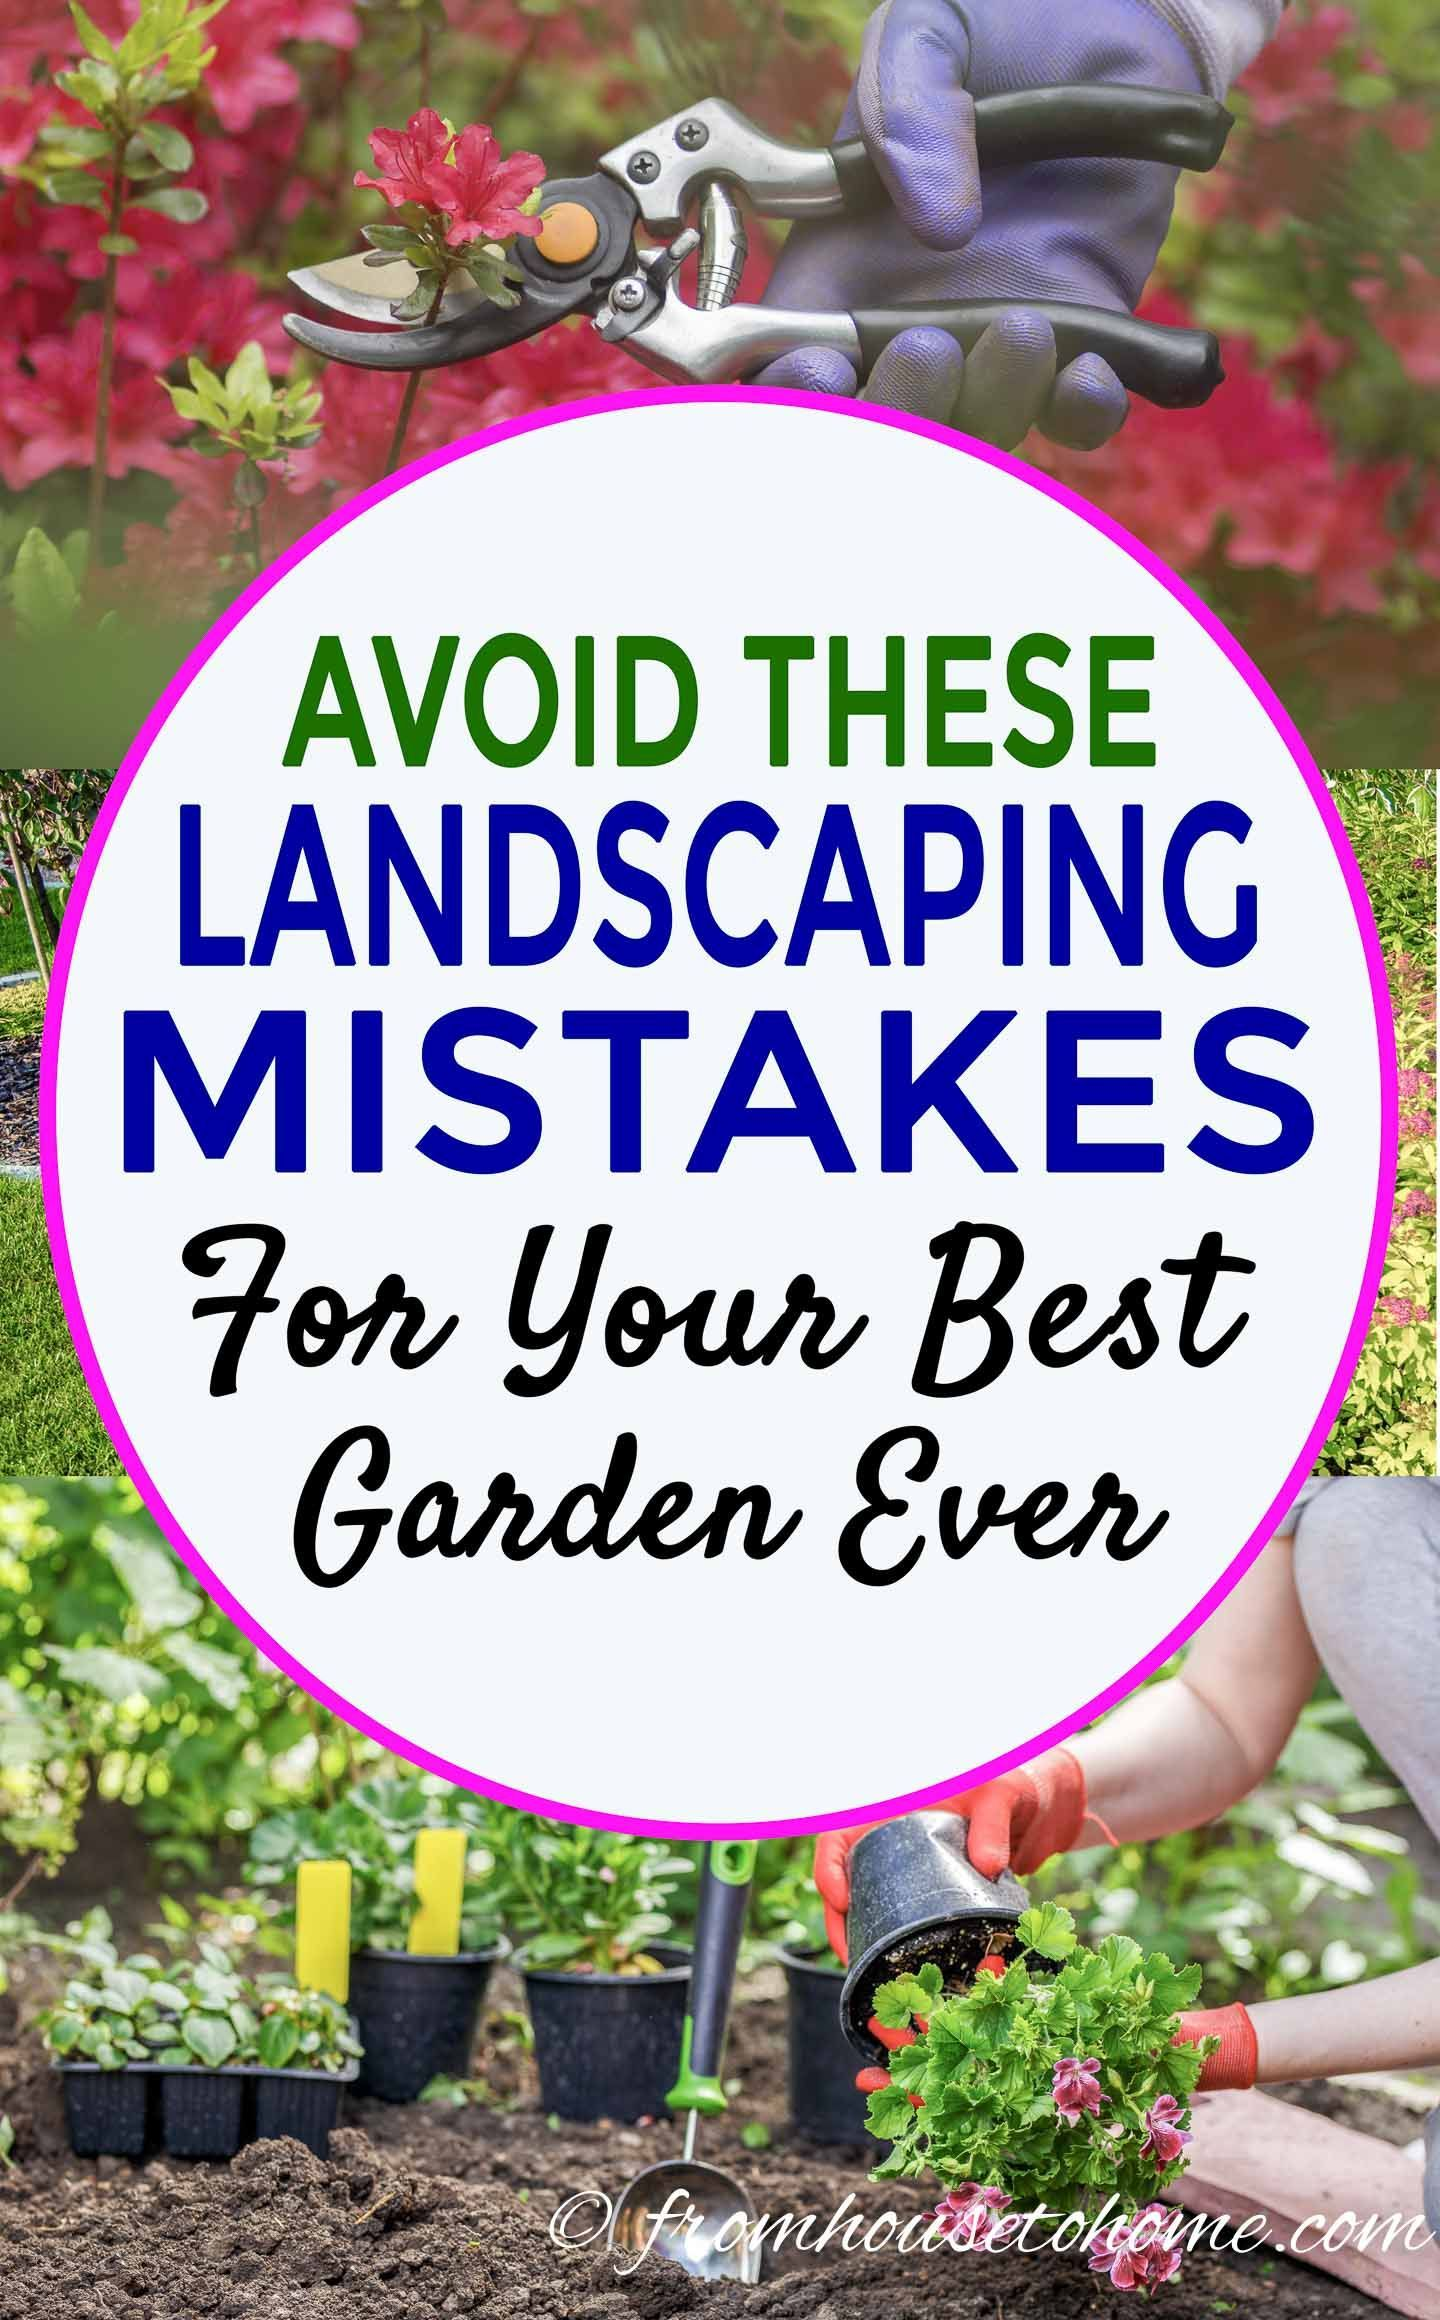 Avoid These 10 Landscaping Mistakes For Your Best Garden Ever - Gardening @ From House To Home #landscapingtips